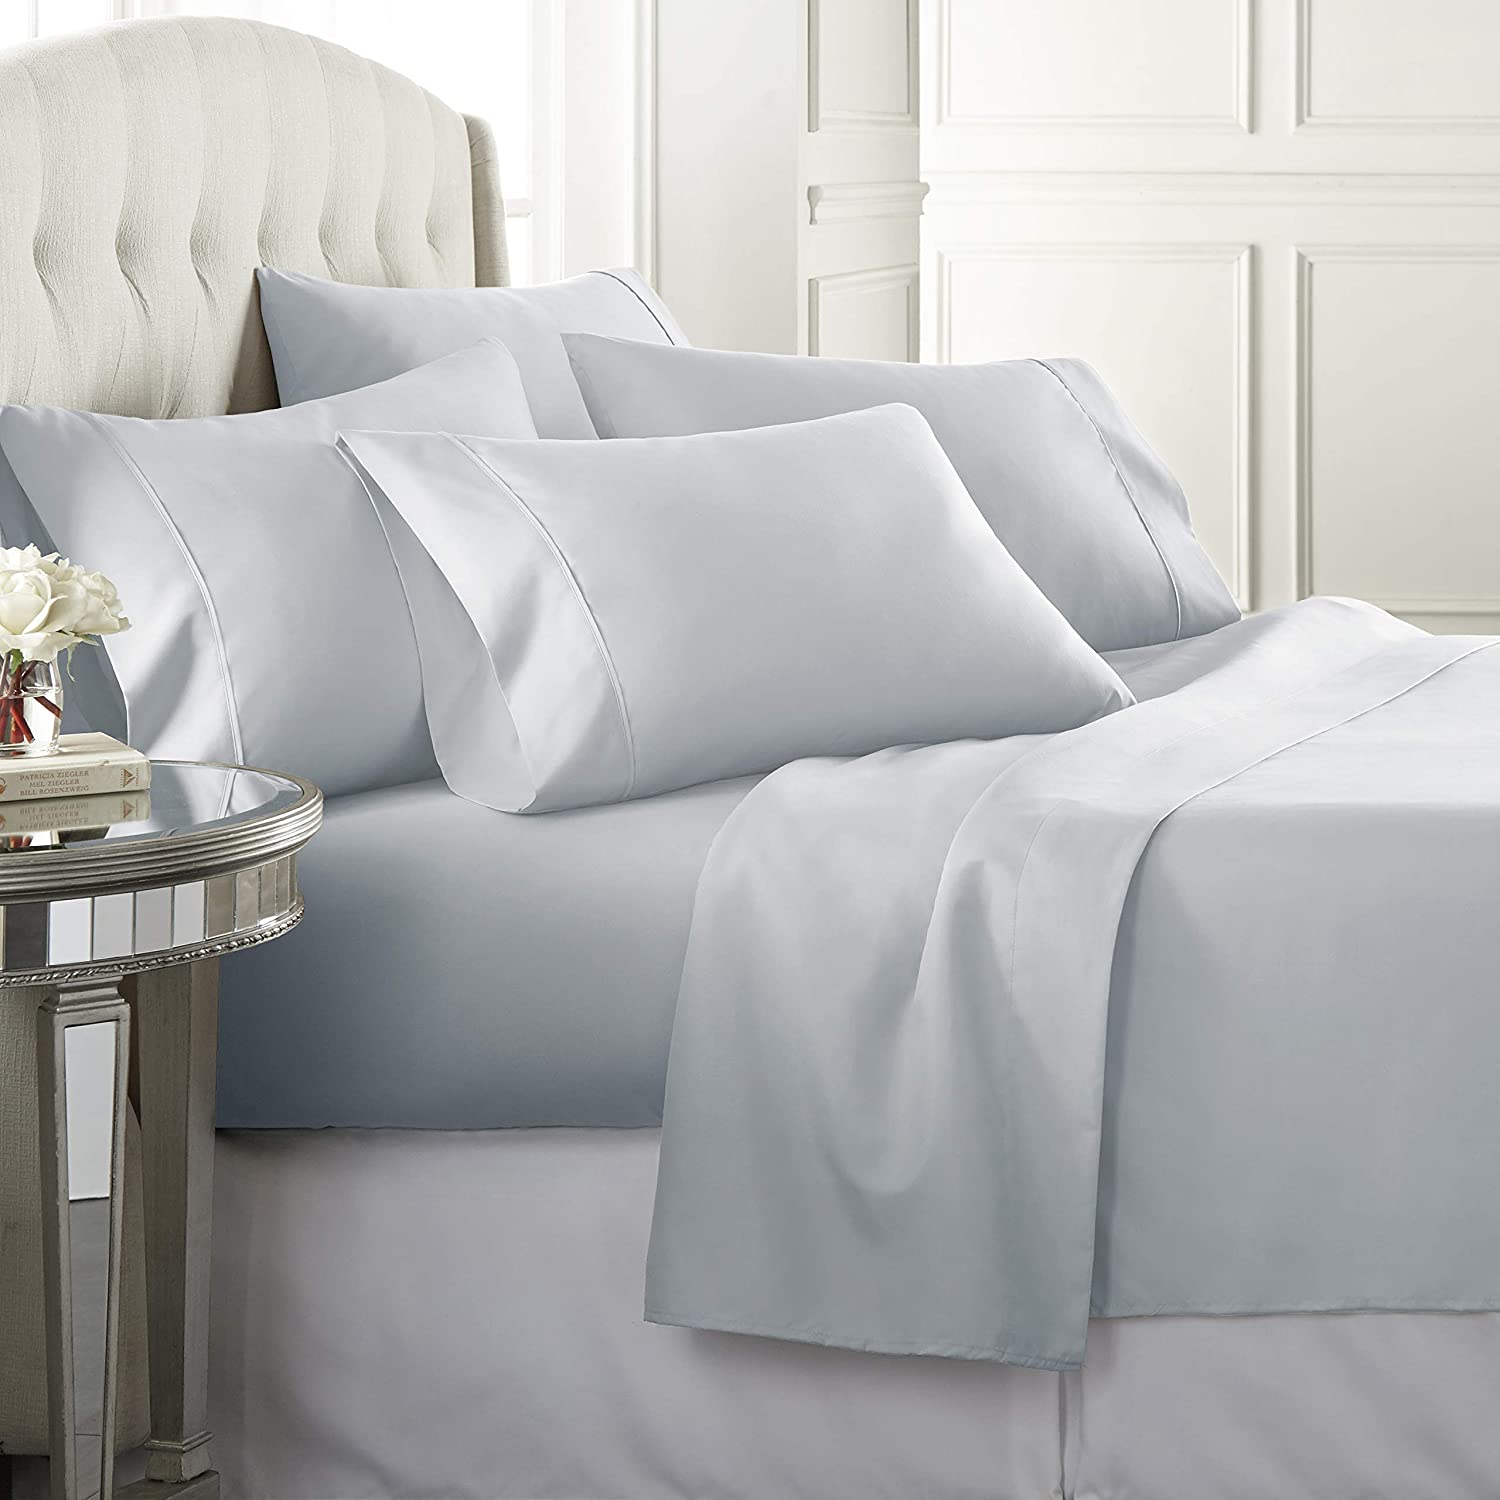 6 Piece Hotel Luxury Soft 1800 Series Premium Bed Sheets Set, Deep Pockets, Hypoallergenic, Wrinkle & Fade Resistant Bedding Set(Queen, Ice Blue